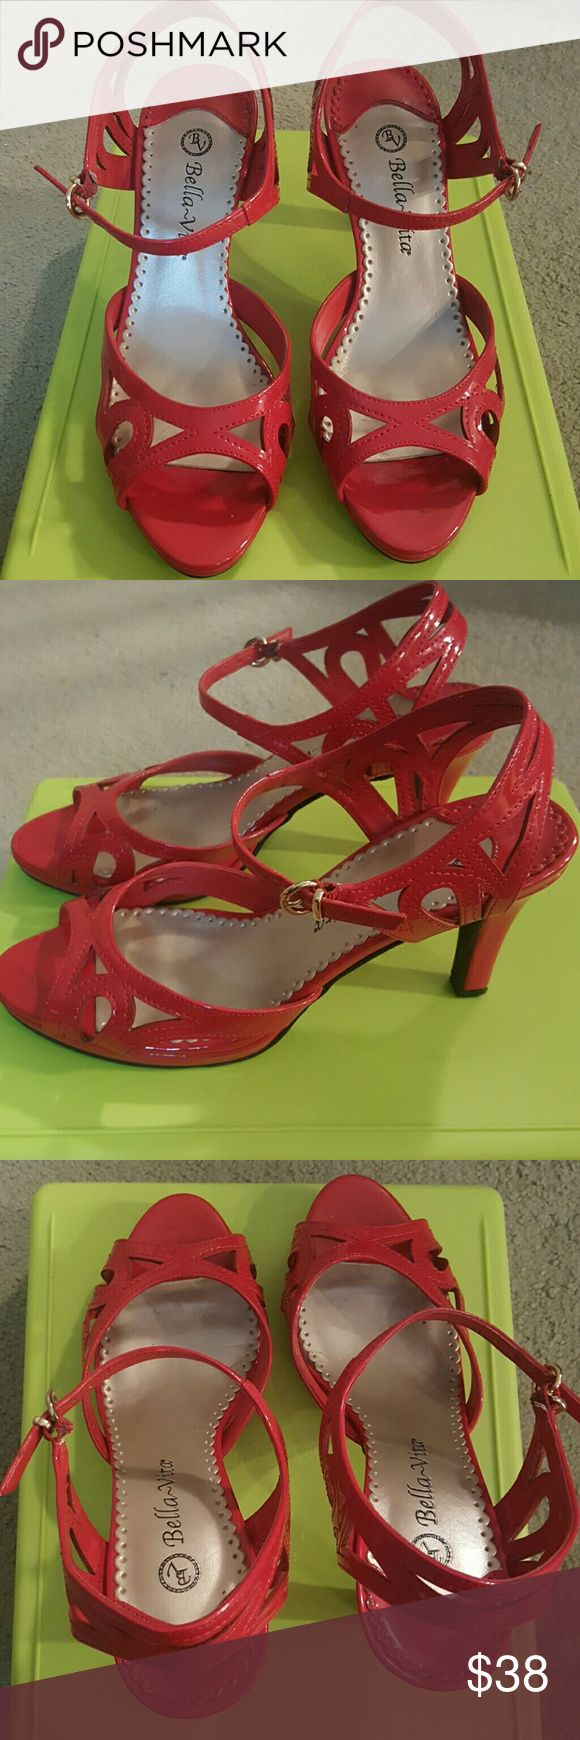 """Bellavita BV powerful fiery red platform sandals Bellavita BV powerful fiery red platform sandals 7/8 inch front platform 3"""" back heel platform  Size 8 In excellent condition  Very comfortable and still sexy ! bellavita Shoes Sandals"""